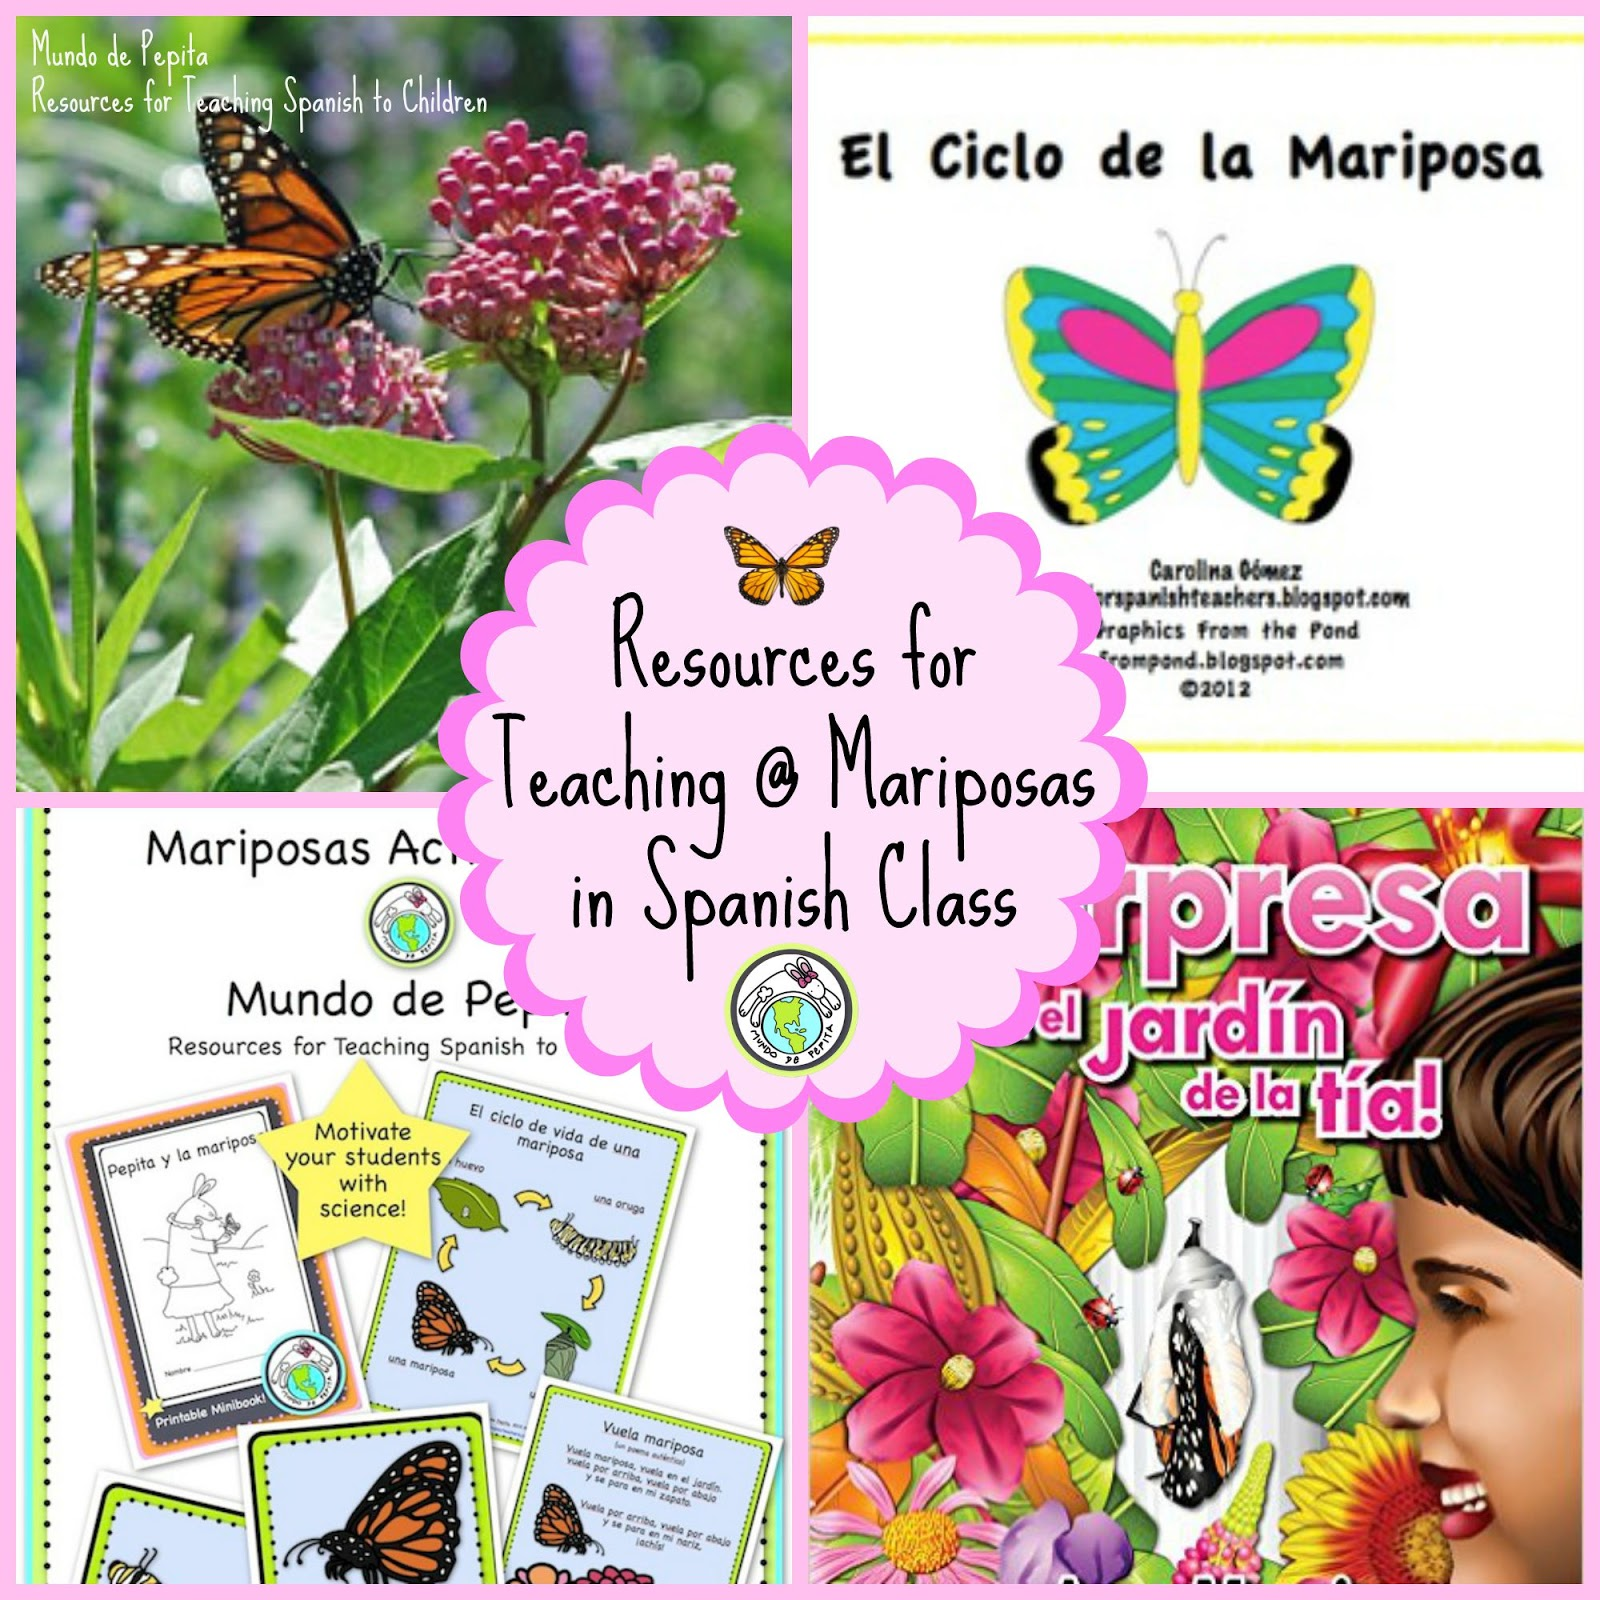 Mundo De Pepita Resources For Teaching About Mariposas In Your Spanish Classroom